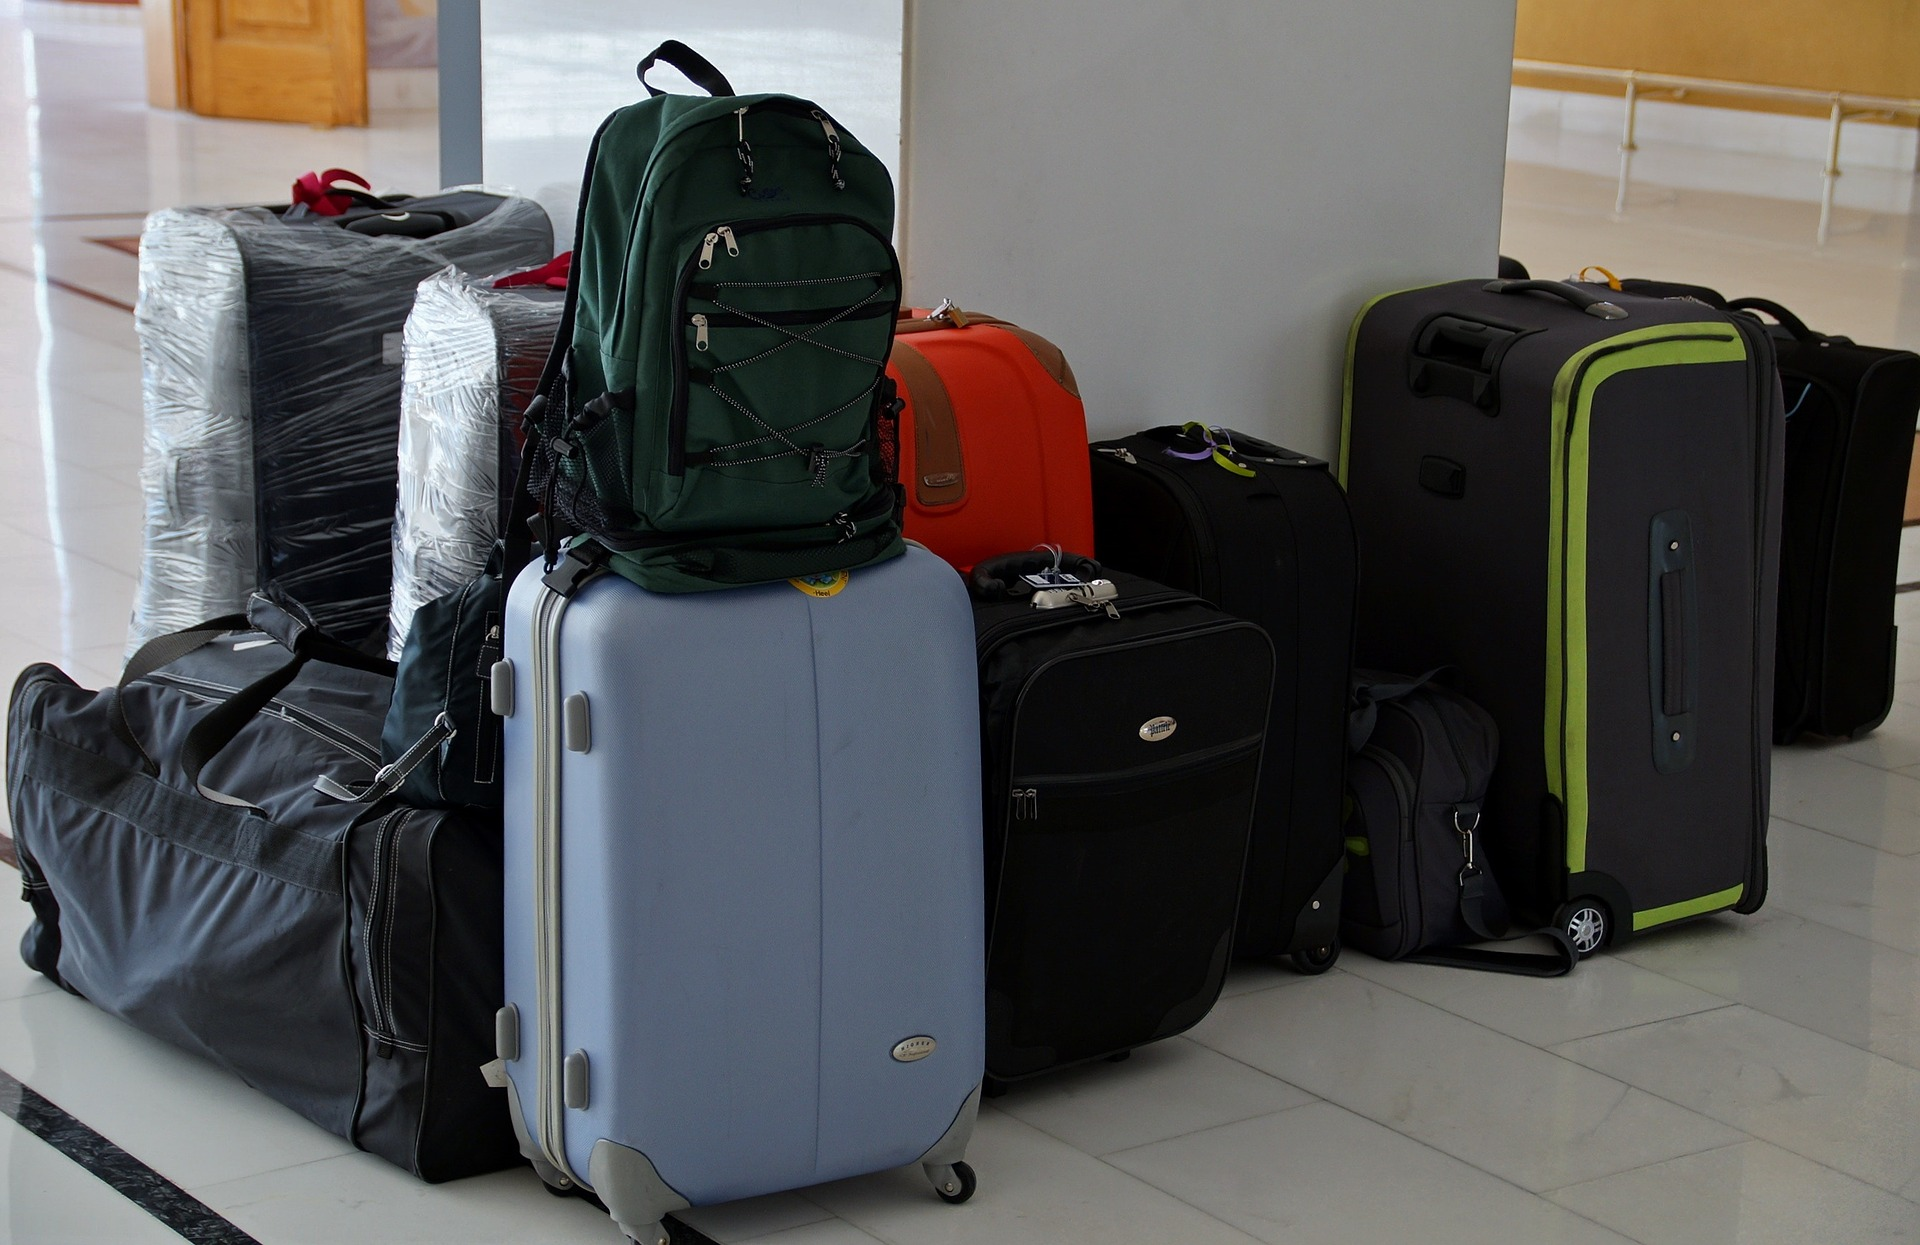 Don't overpack for hospital